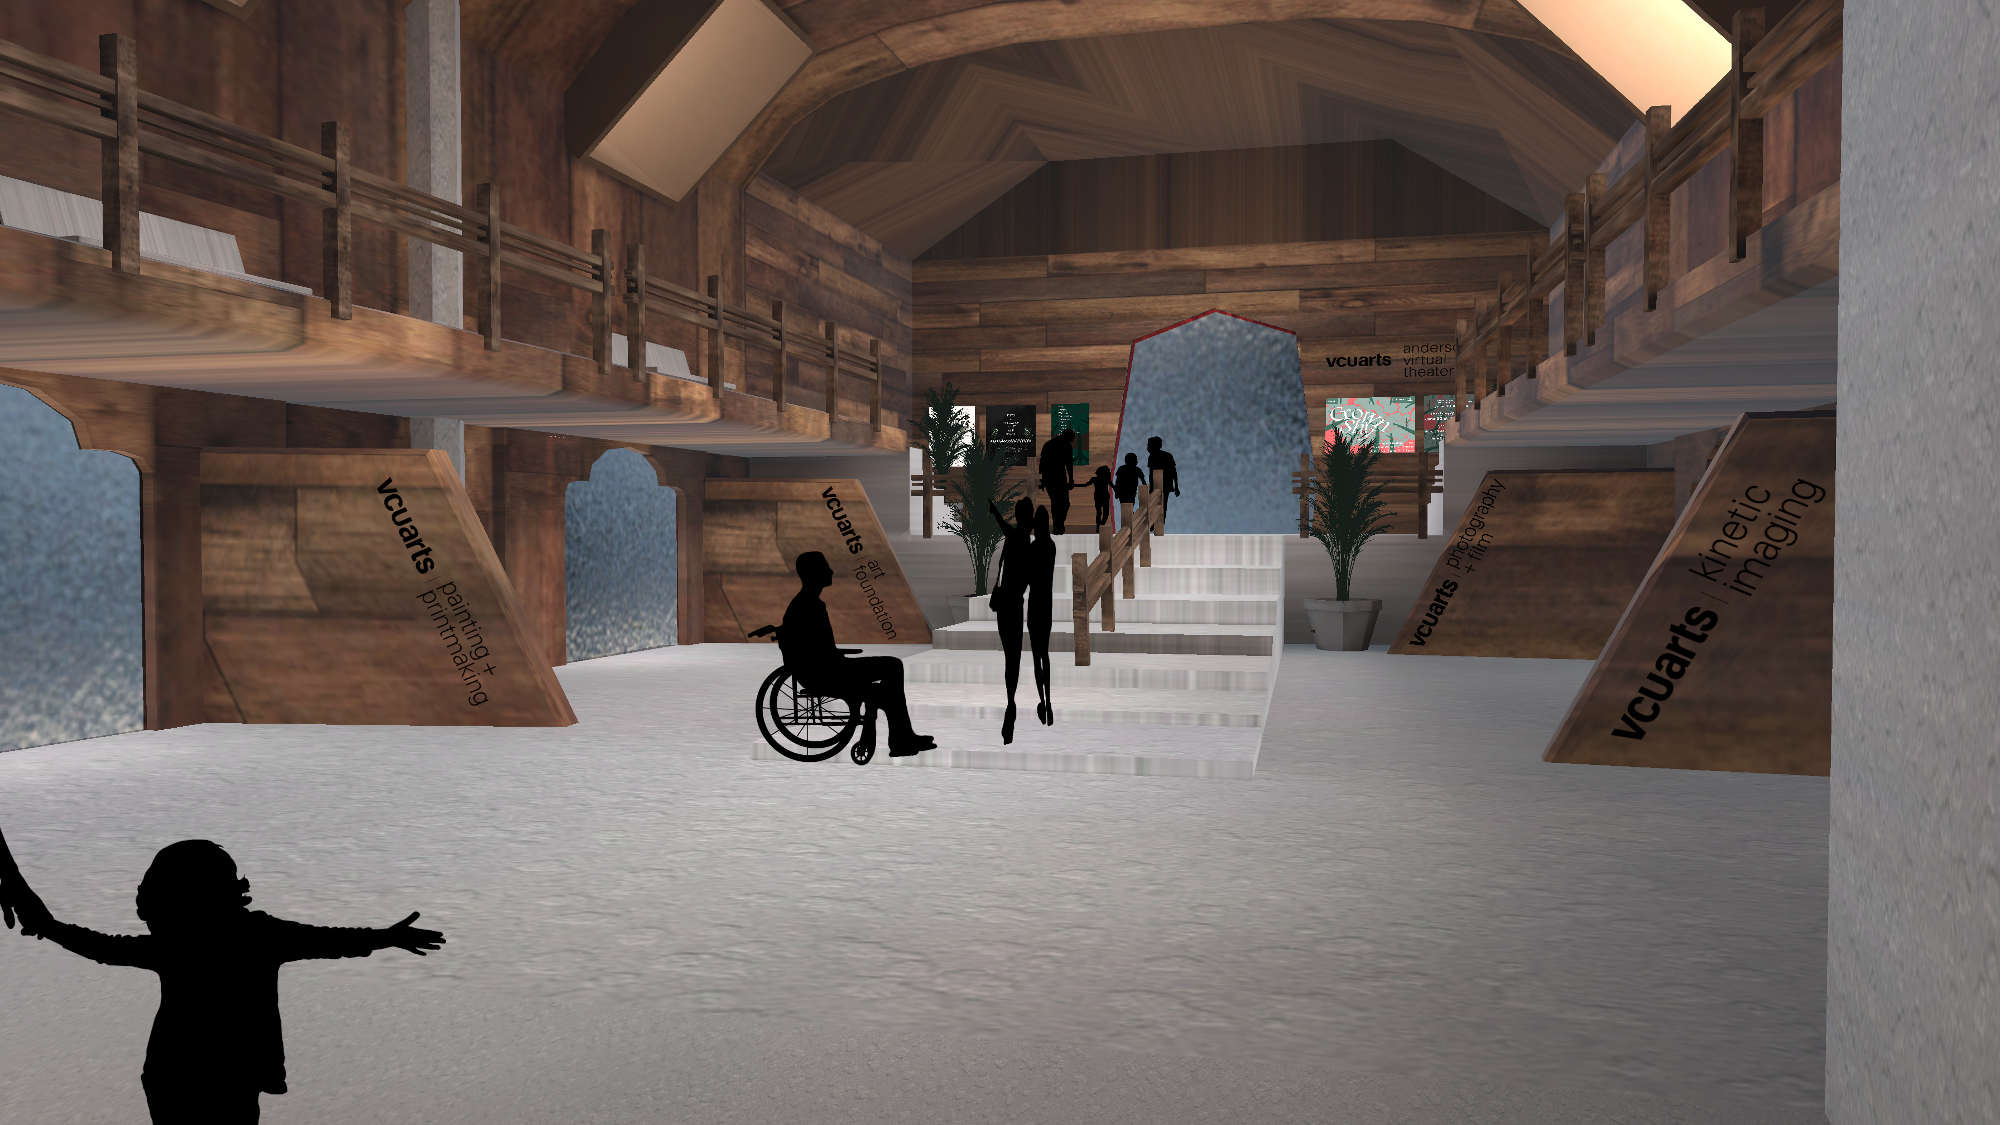 The main hall of the Virtual Anderson 2020 BFA Senior Capstone with Gallery and Theater doors and labels as well as black silhouettes of a variety of figures.